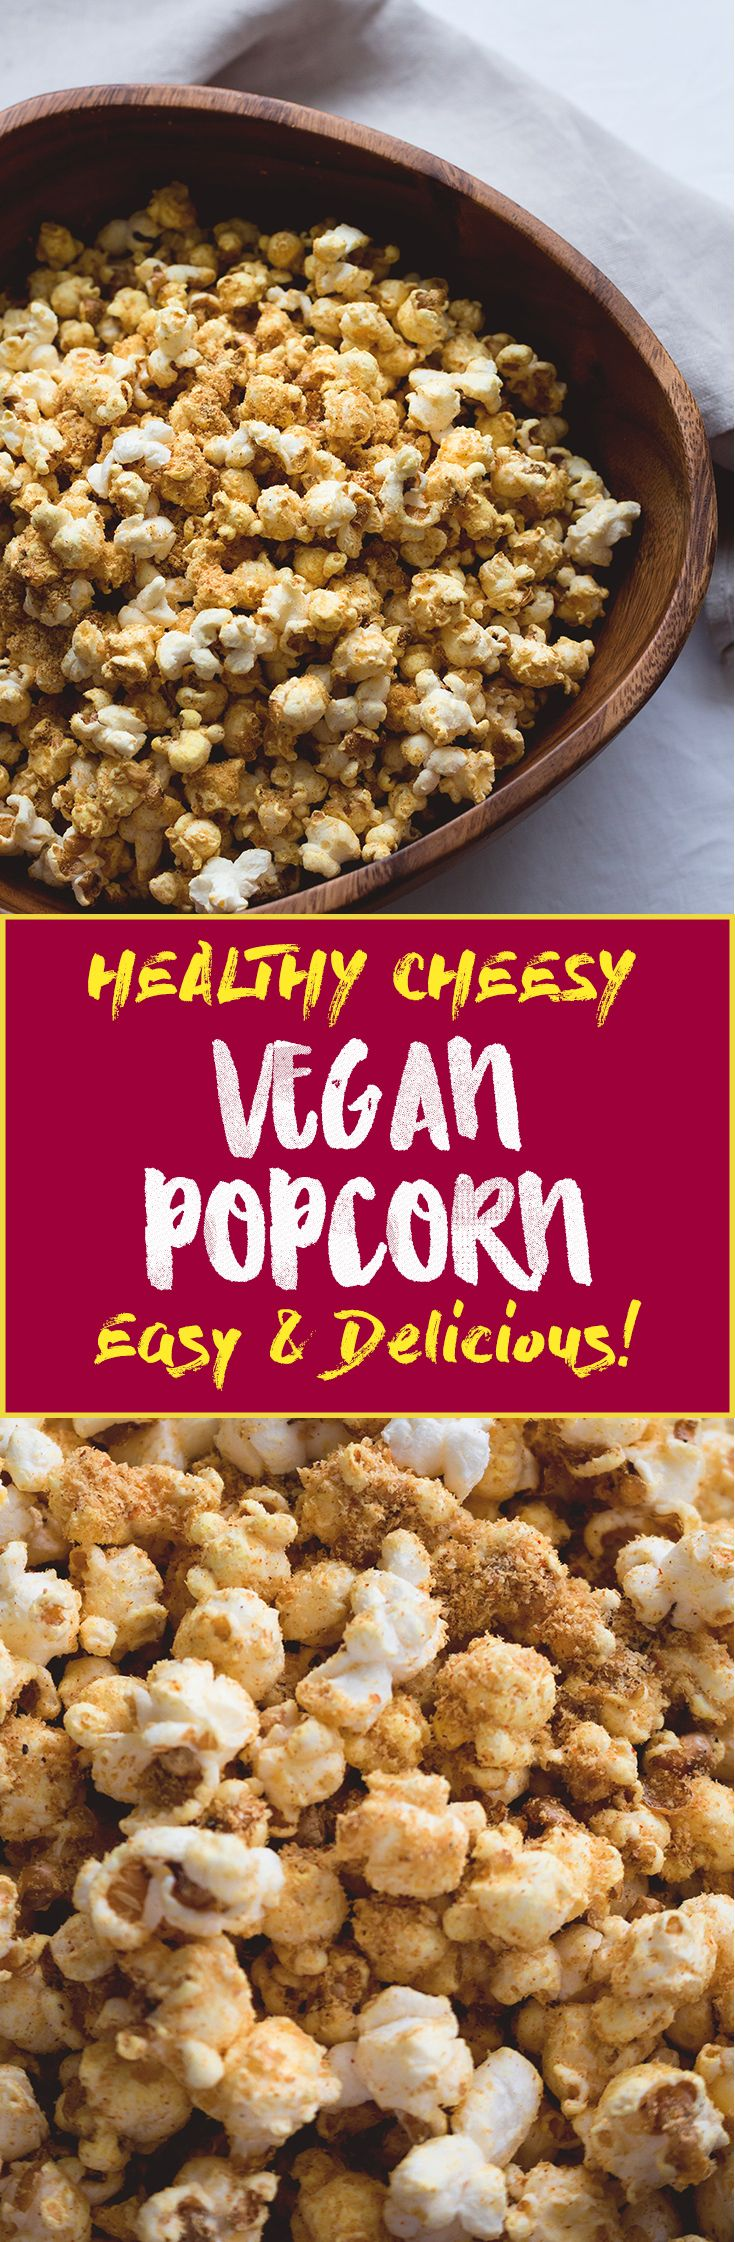 Cheesy Vegan Popcorn - a delicious healthy twist on the classic. Popped the old-fashioned way on the stove with coconut oil and then spiced to perfecting. Ridiculously easy to make!   thehealthfulideas.com